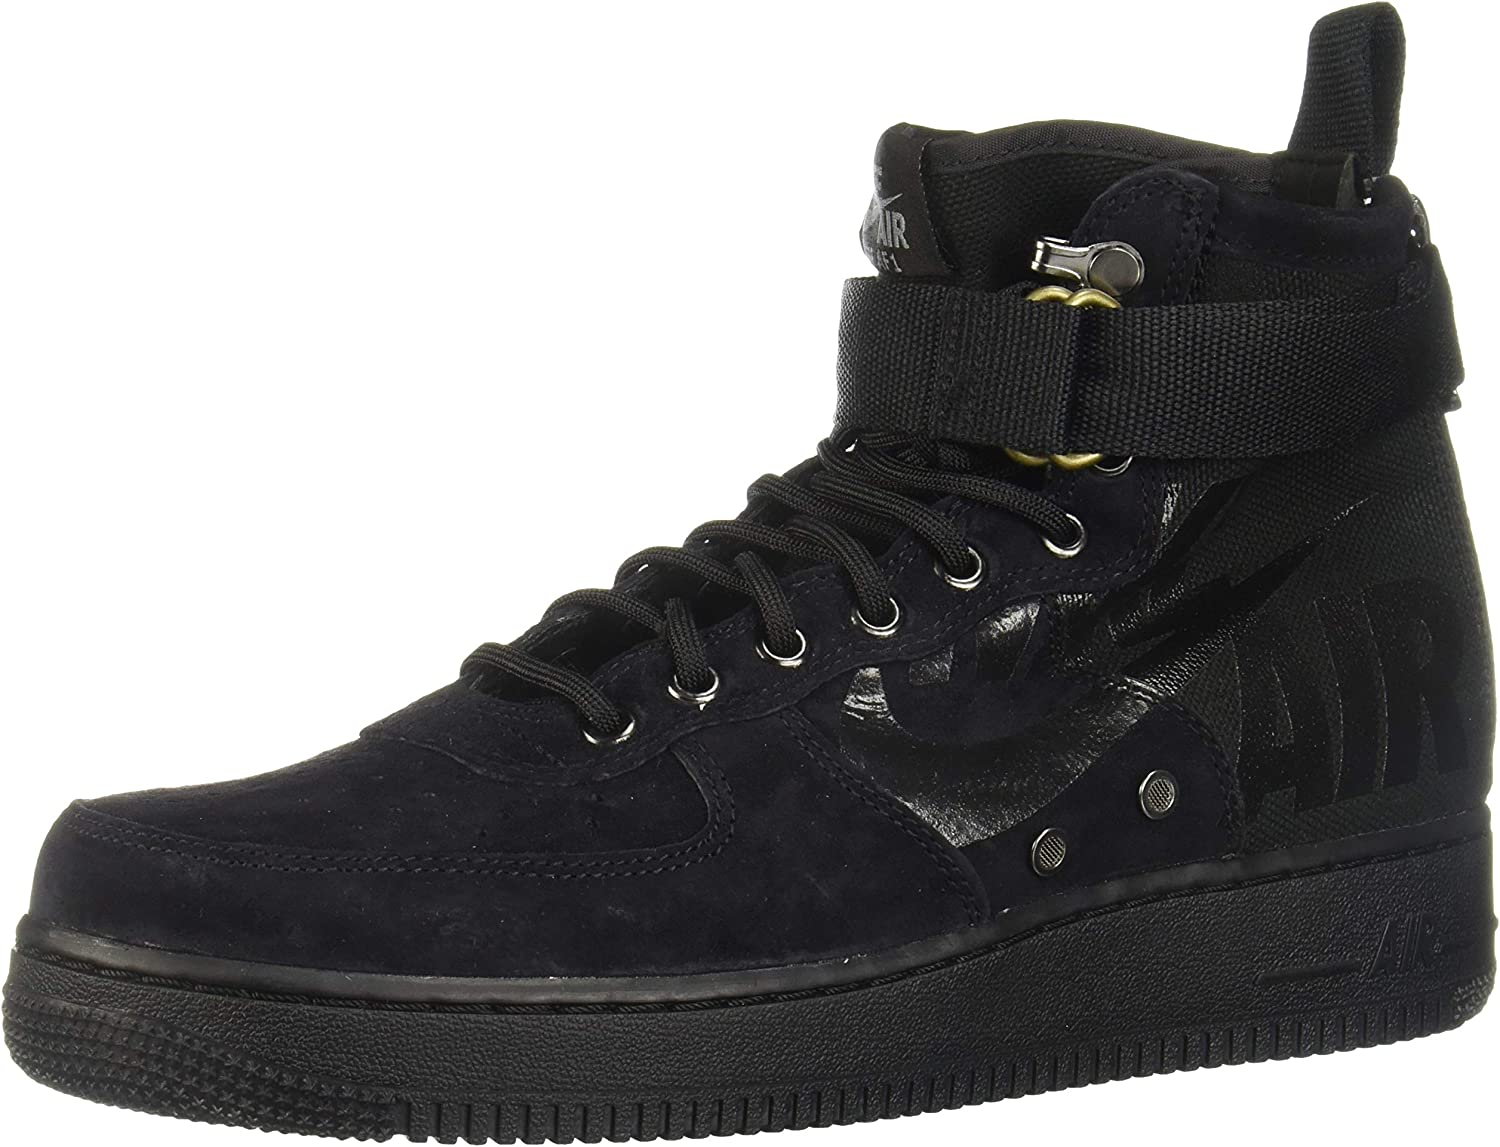 Nike Men's Sf Air Force 1 Mid shoes Gymnastics